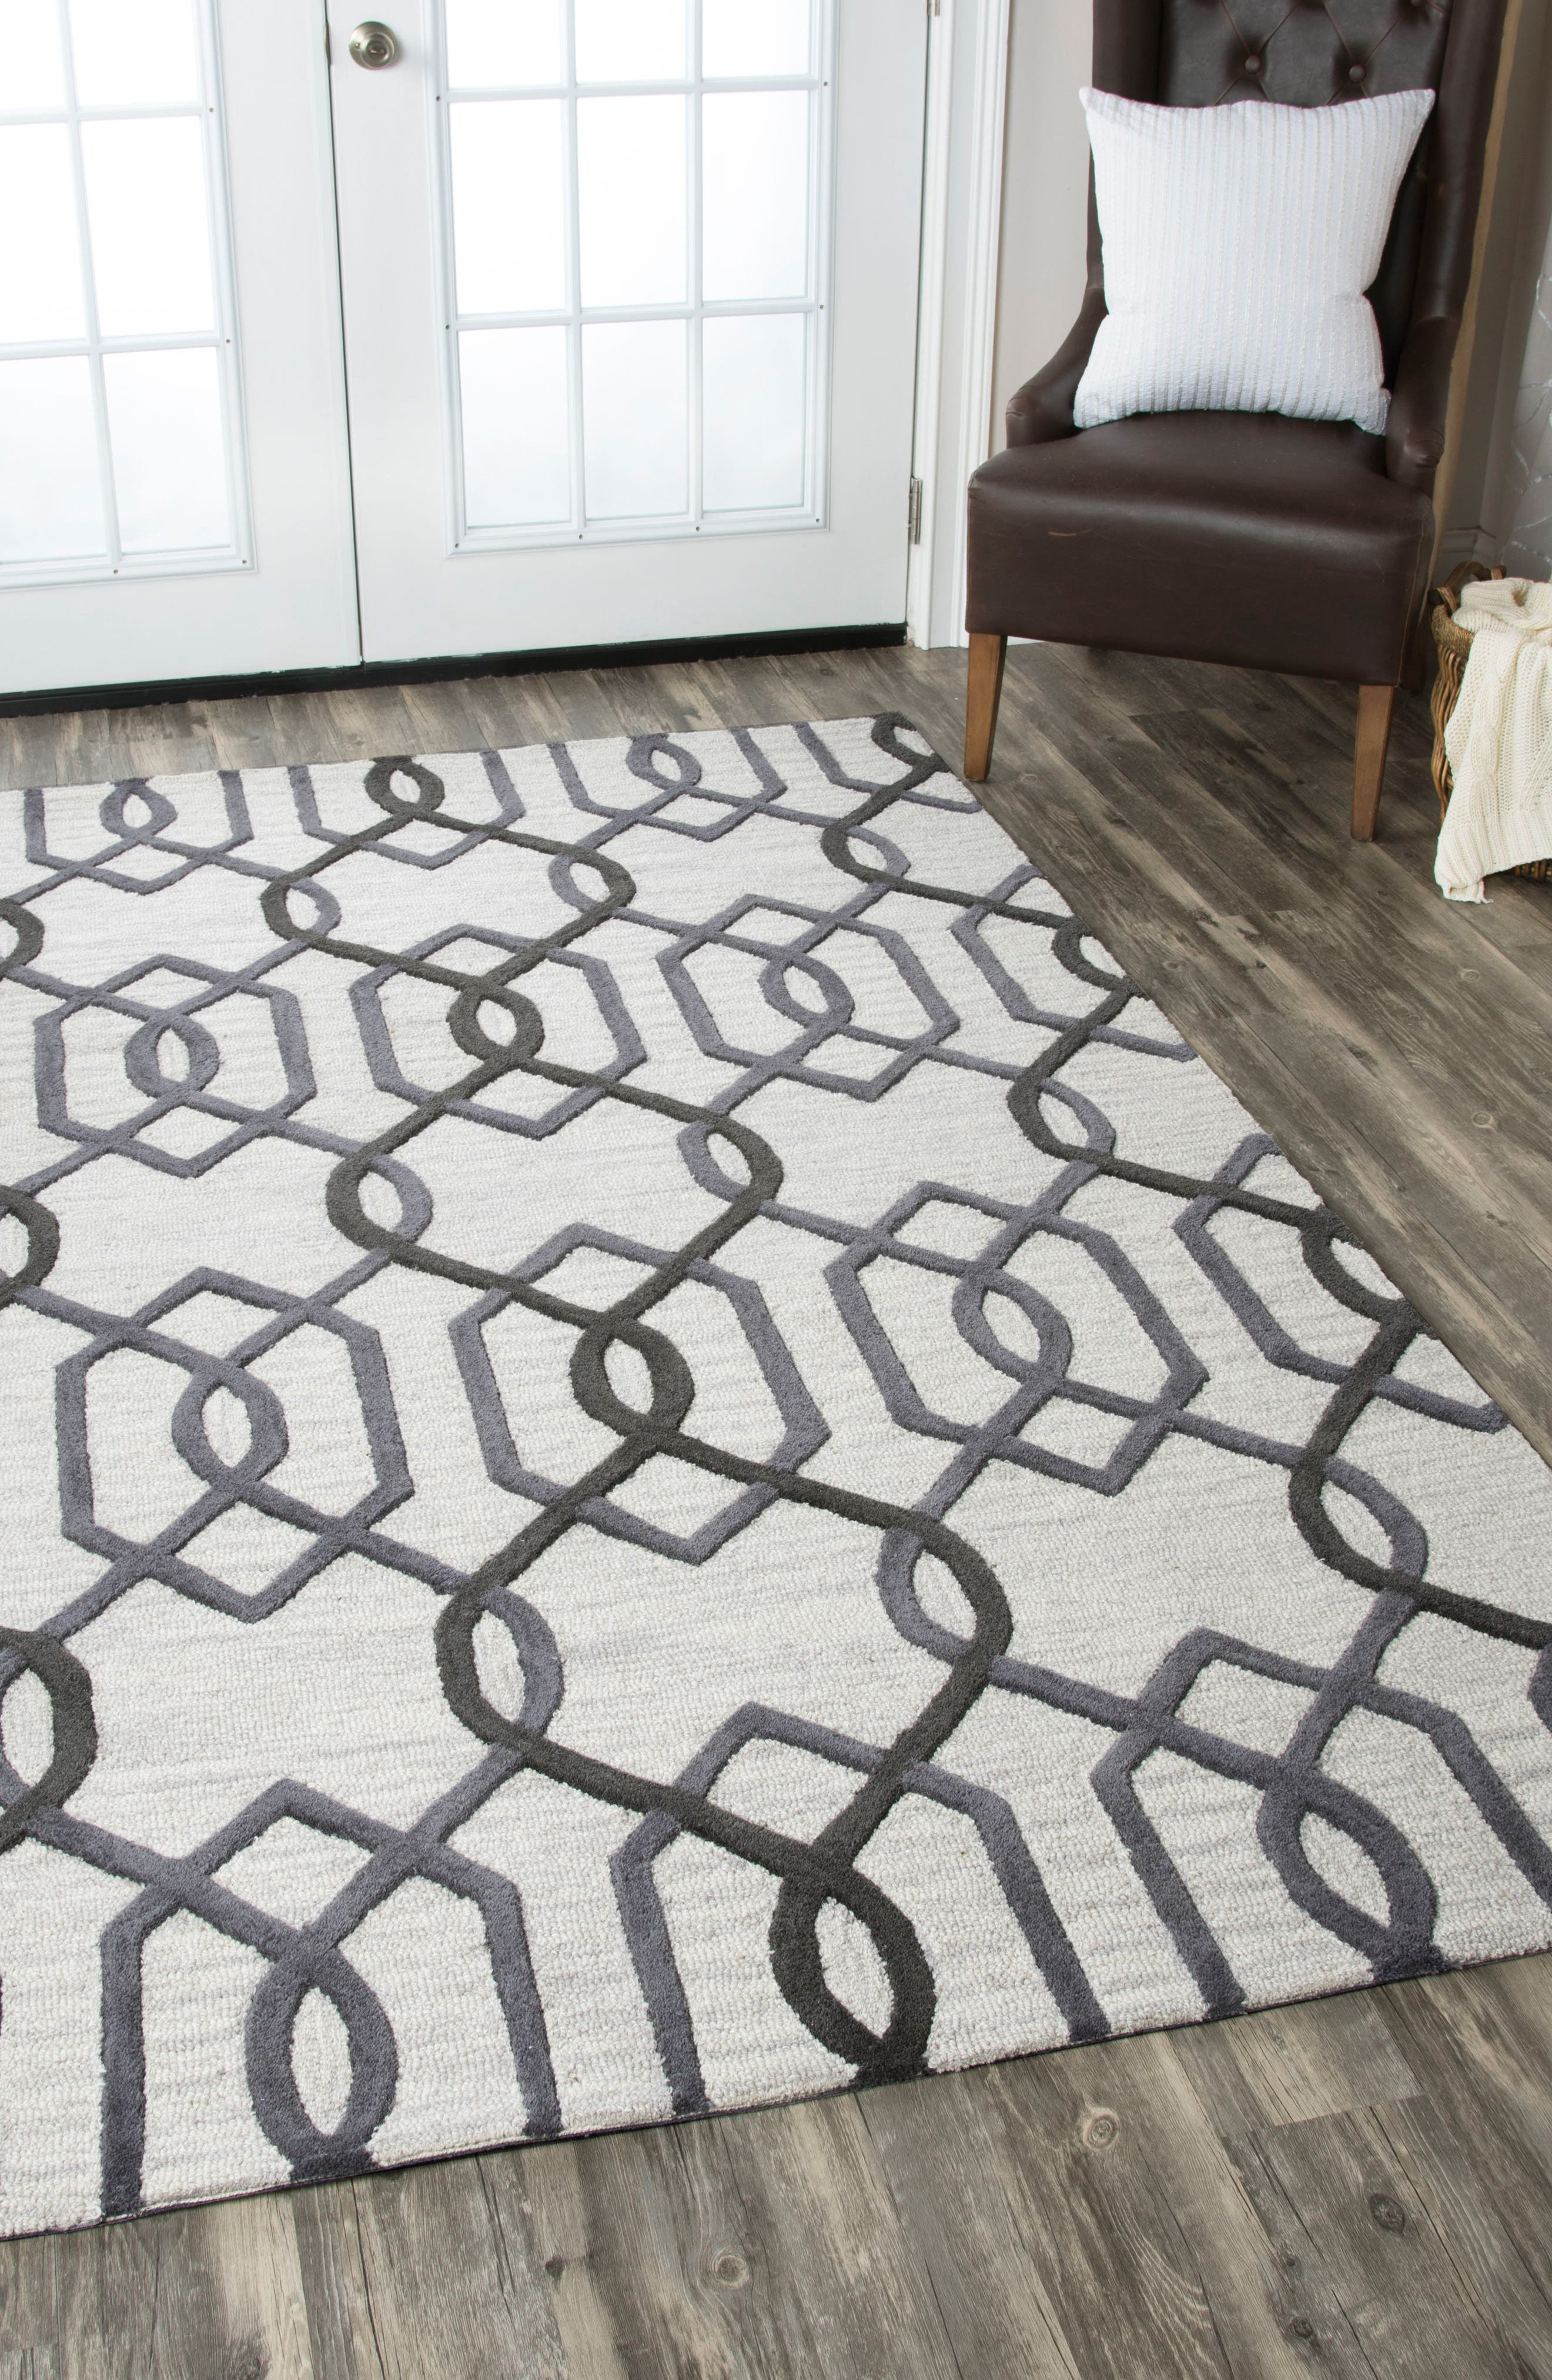 'Caterine Lines' Hand Tufted Wool Area Rug,                             Alternate thumbnail 2, color,                             020